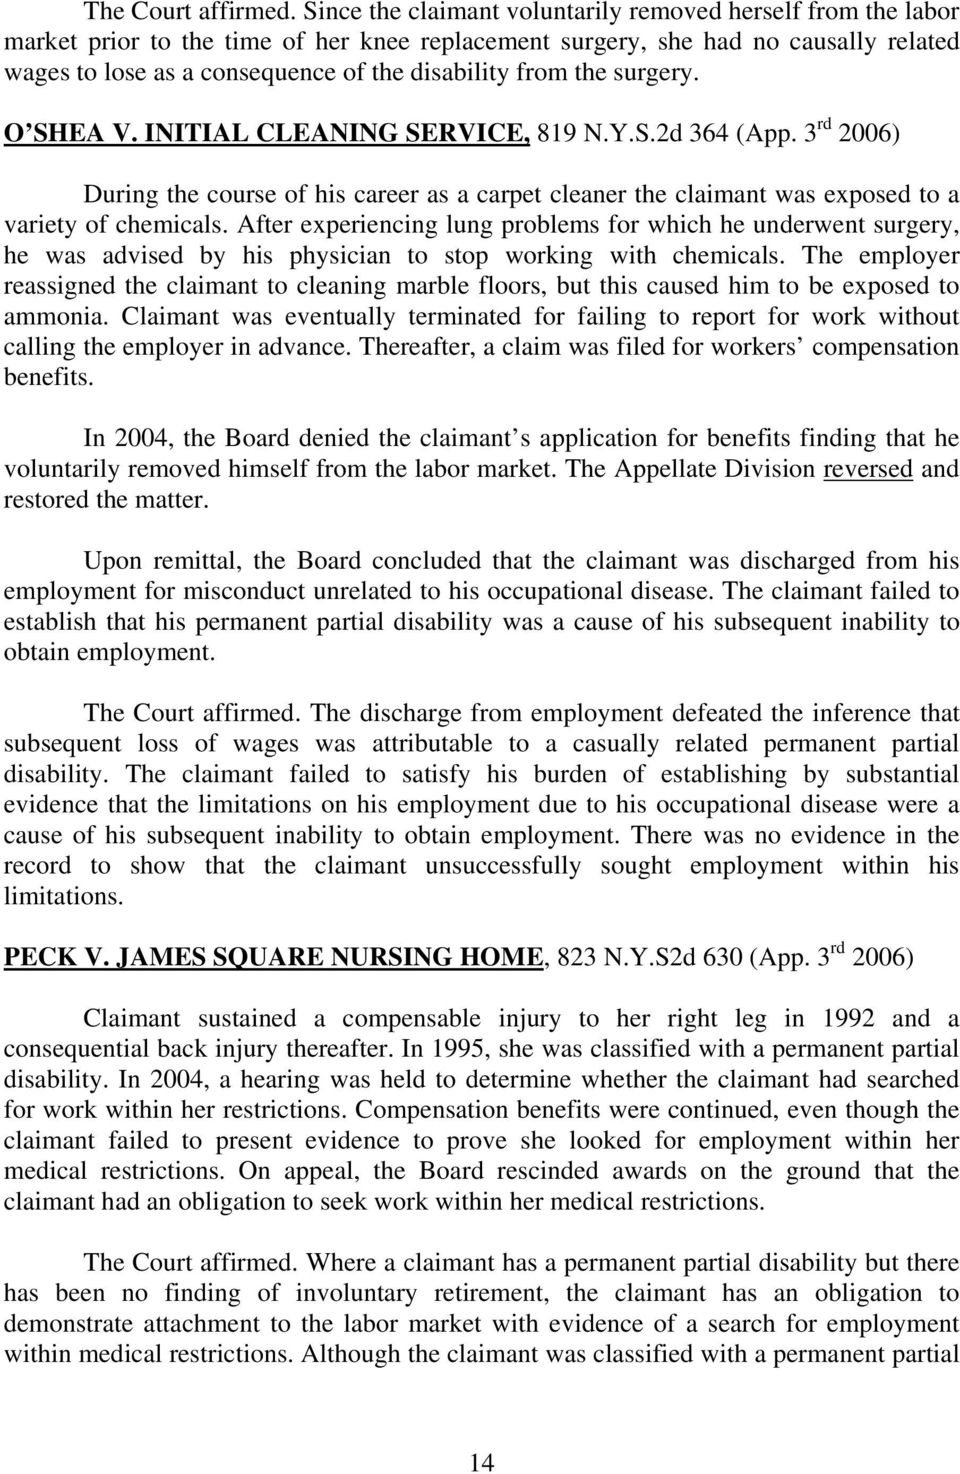 from the surgery. O SHEA V. INITIAL CLEANING SERVICE, 819 N.Y.S.2d 364 (App. 3 rd 2006) During the course of his career as a carpet cleaner the claimant was exposed to a variety of chemicals.